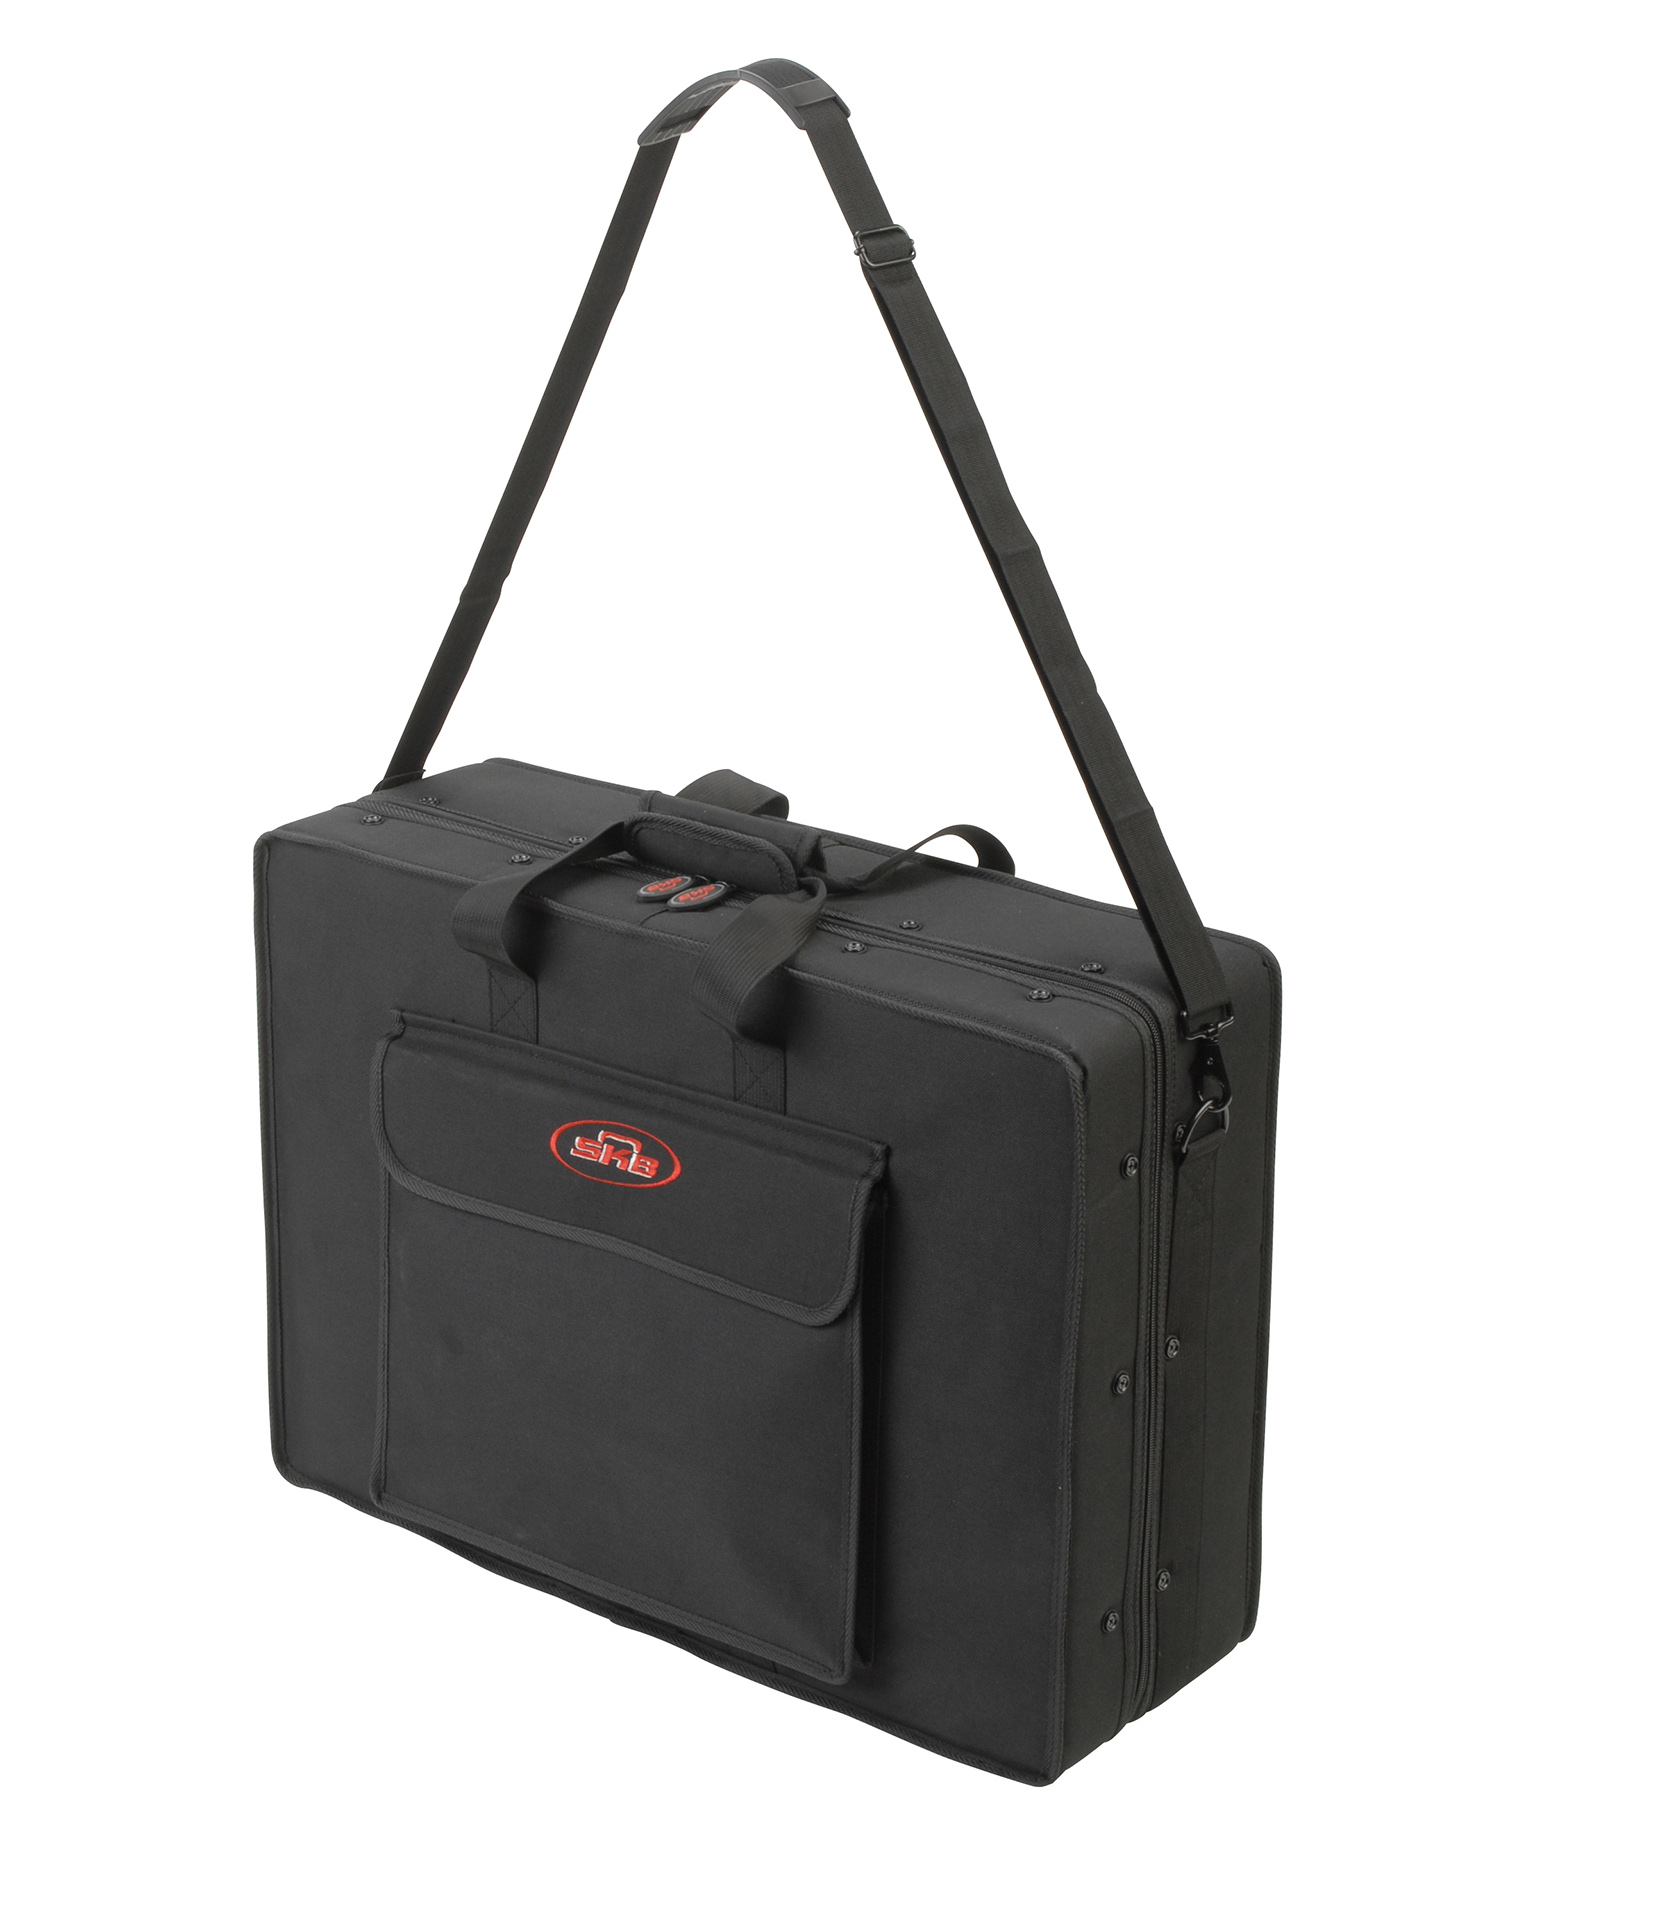 buy skb 1skb sc2316 pedalboard soft case for ps 8 and ps